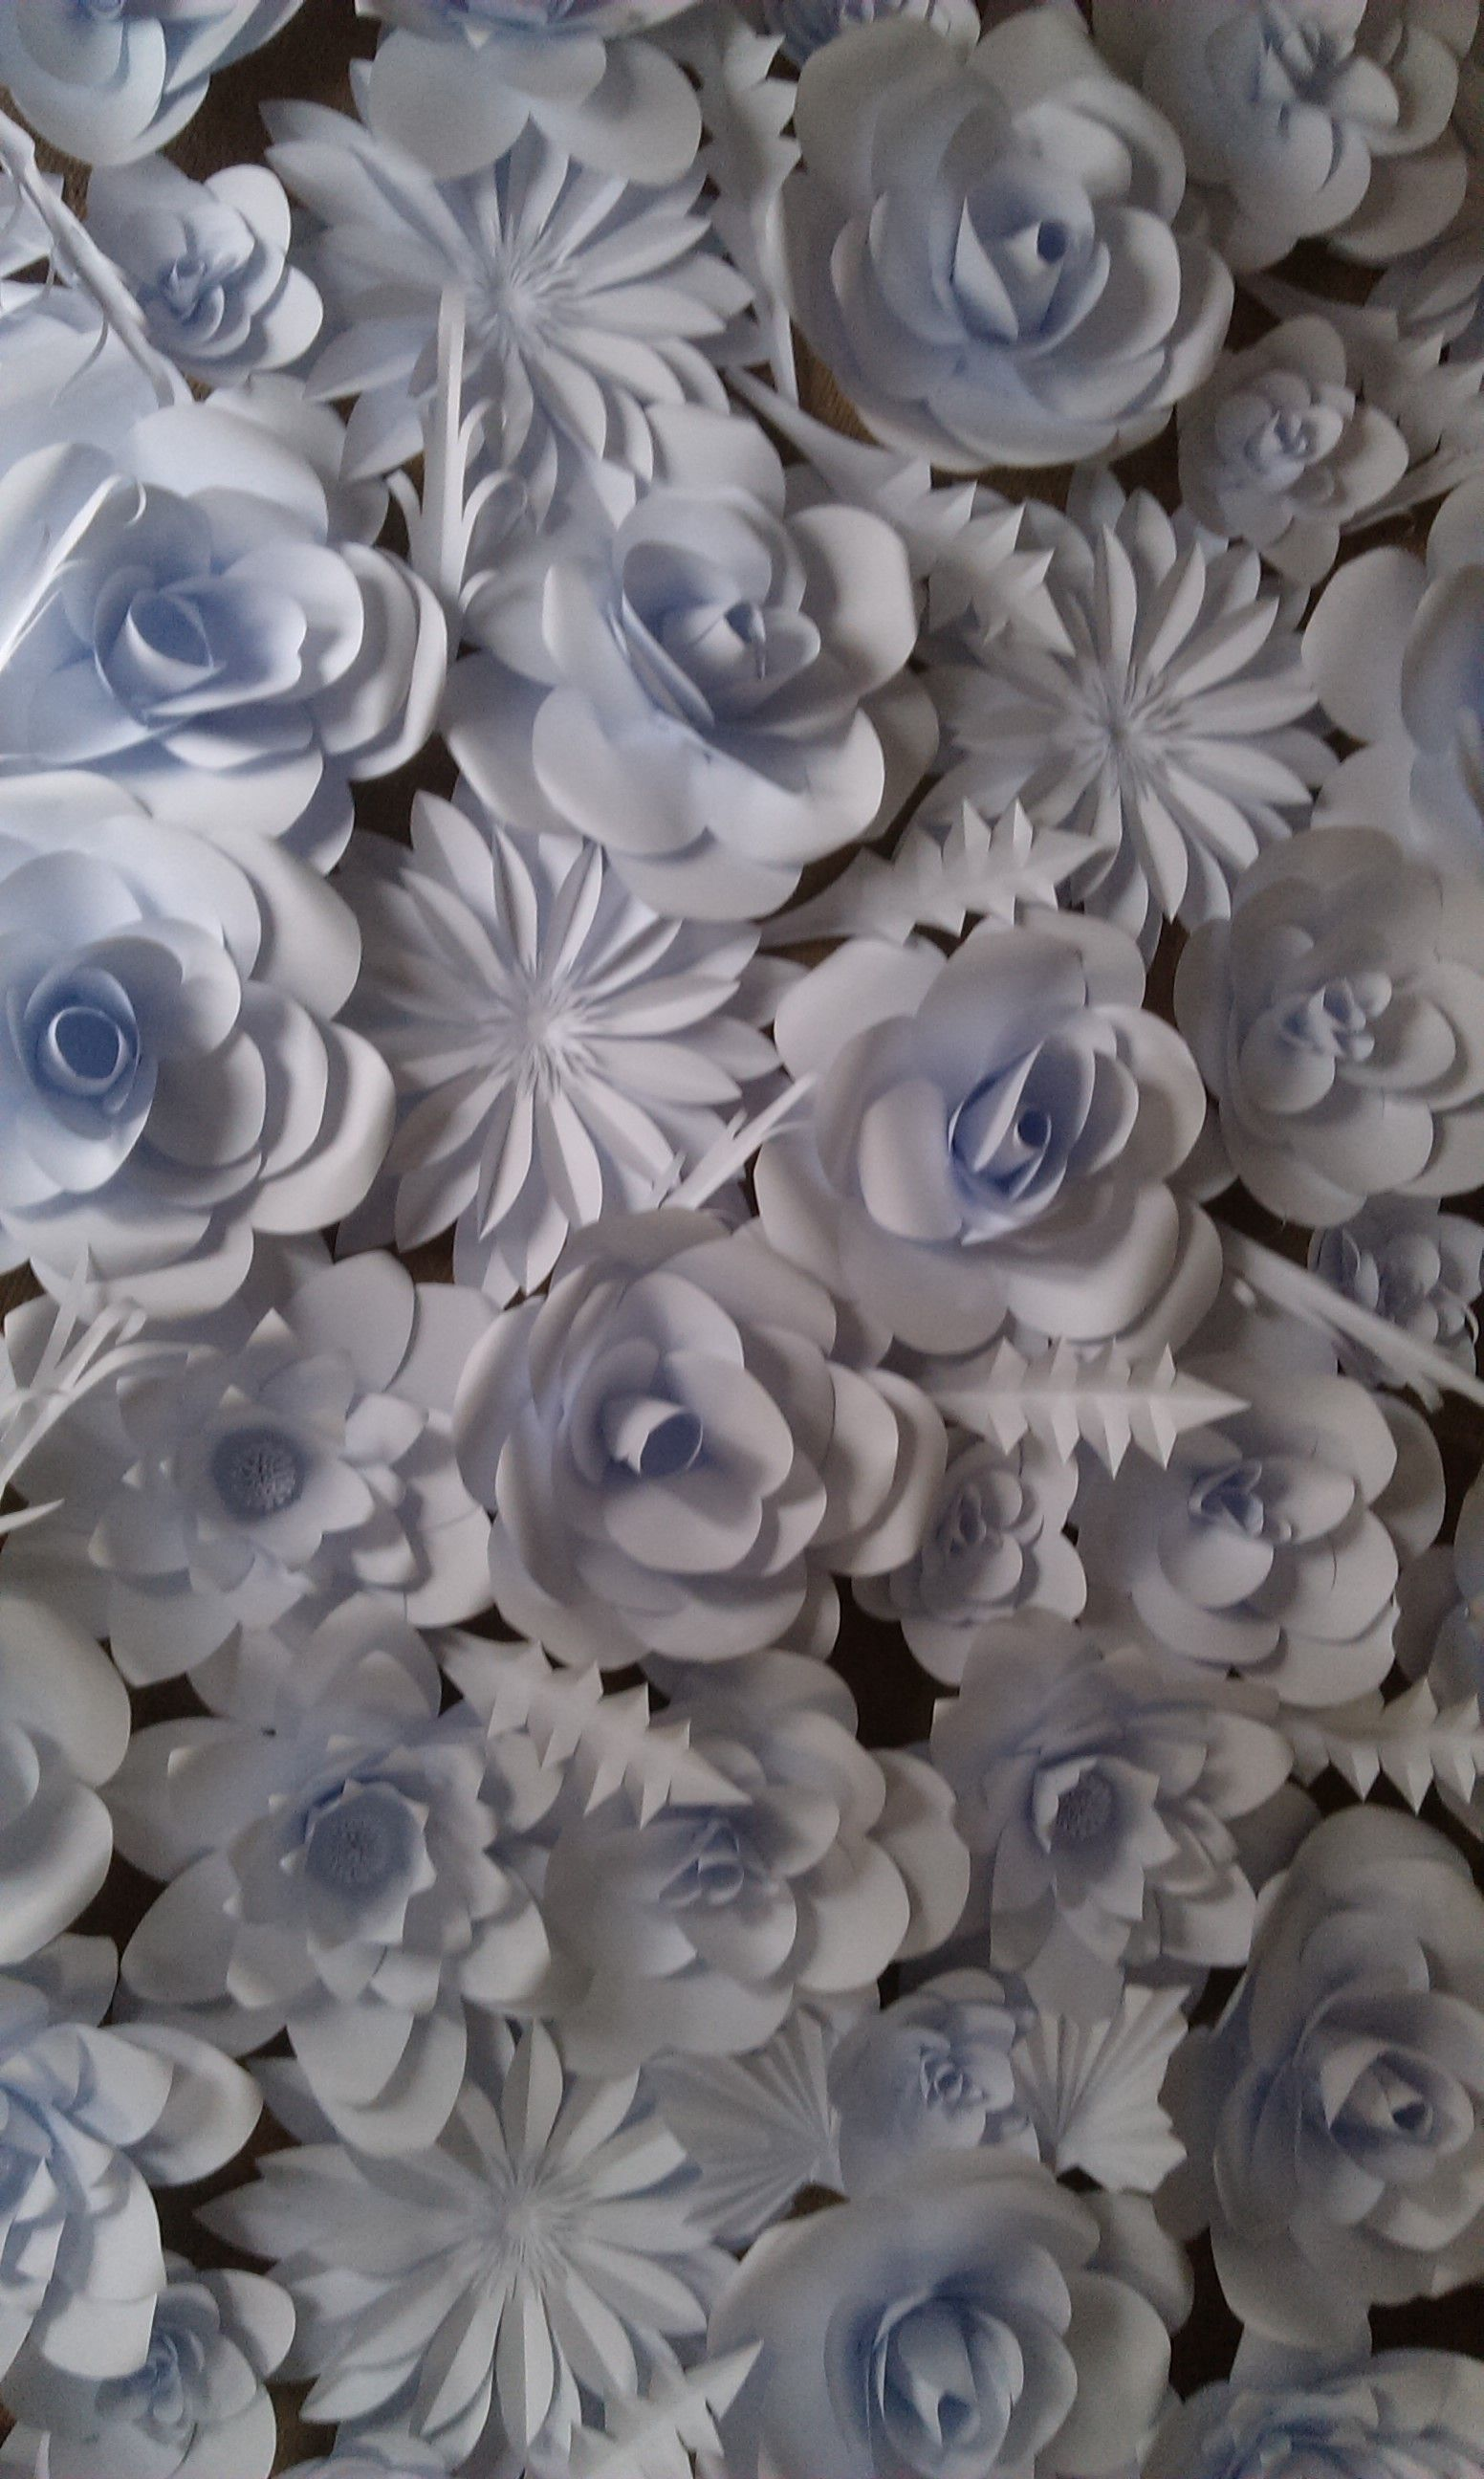 Wall of Paper Flowers ice white Catherineshinn  Paper Flowers